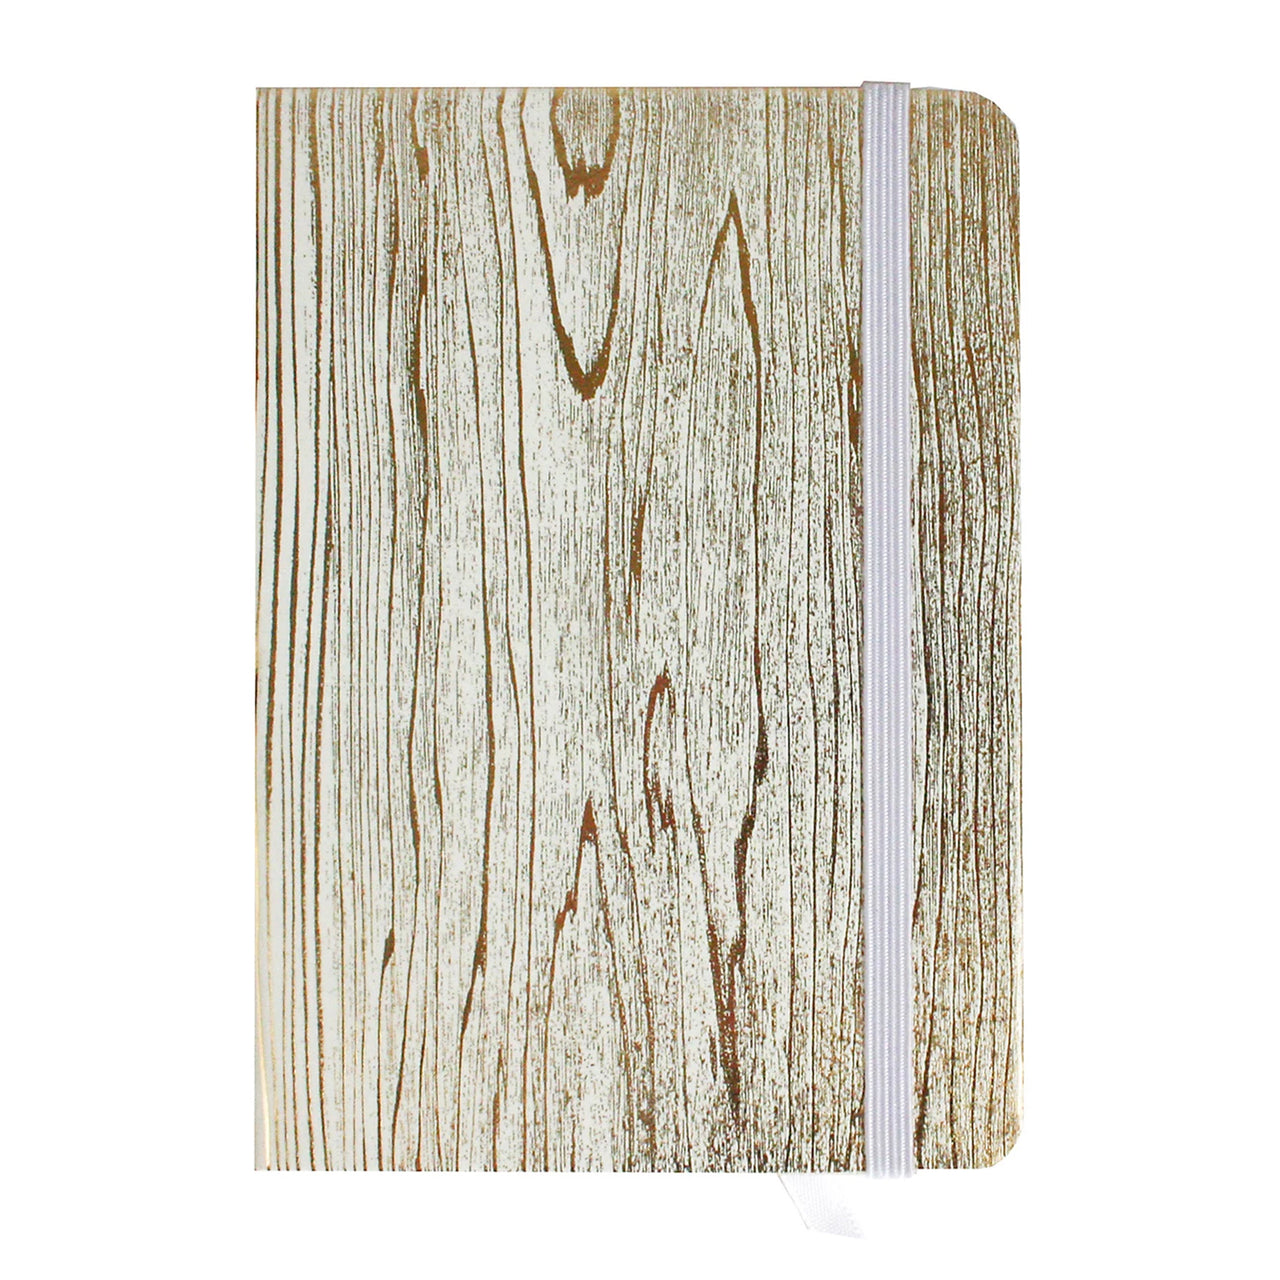 A6 Wood Effect Notebook - Metallic Gold - EMARTBUY